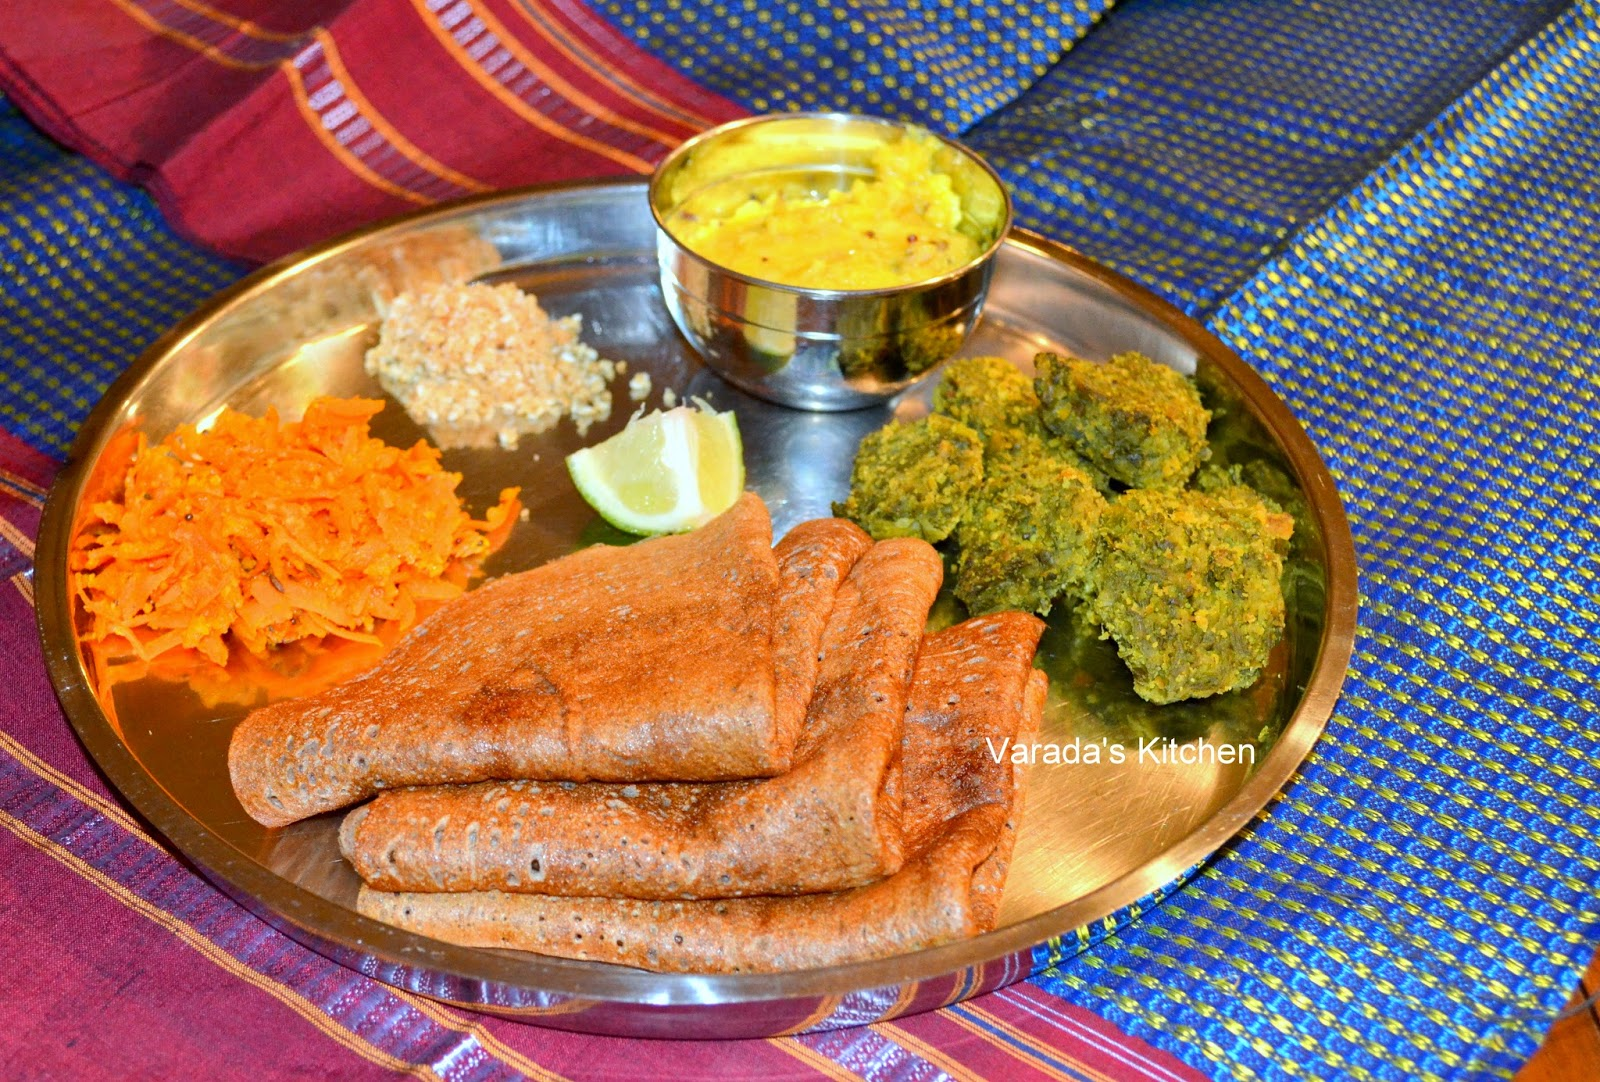 Varadas kitchen traditional maharashtrian meal varadas kitchen forumfinder Choice Image